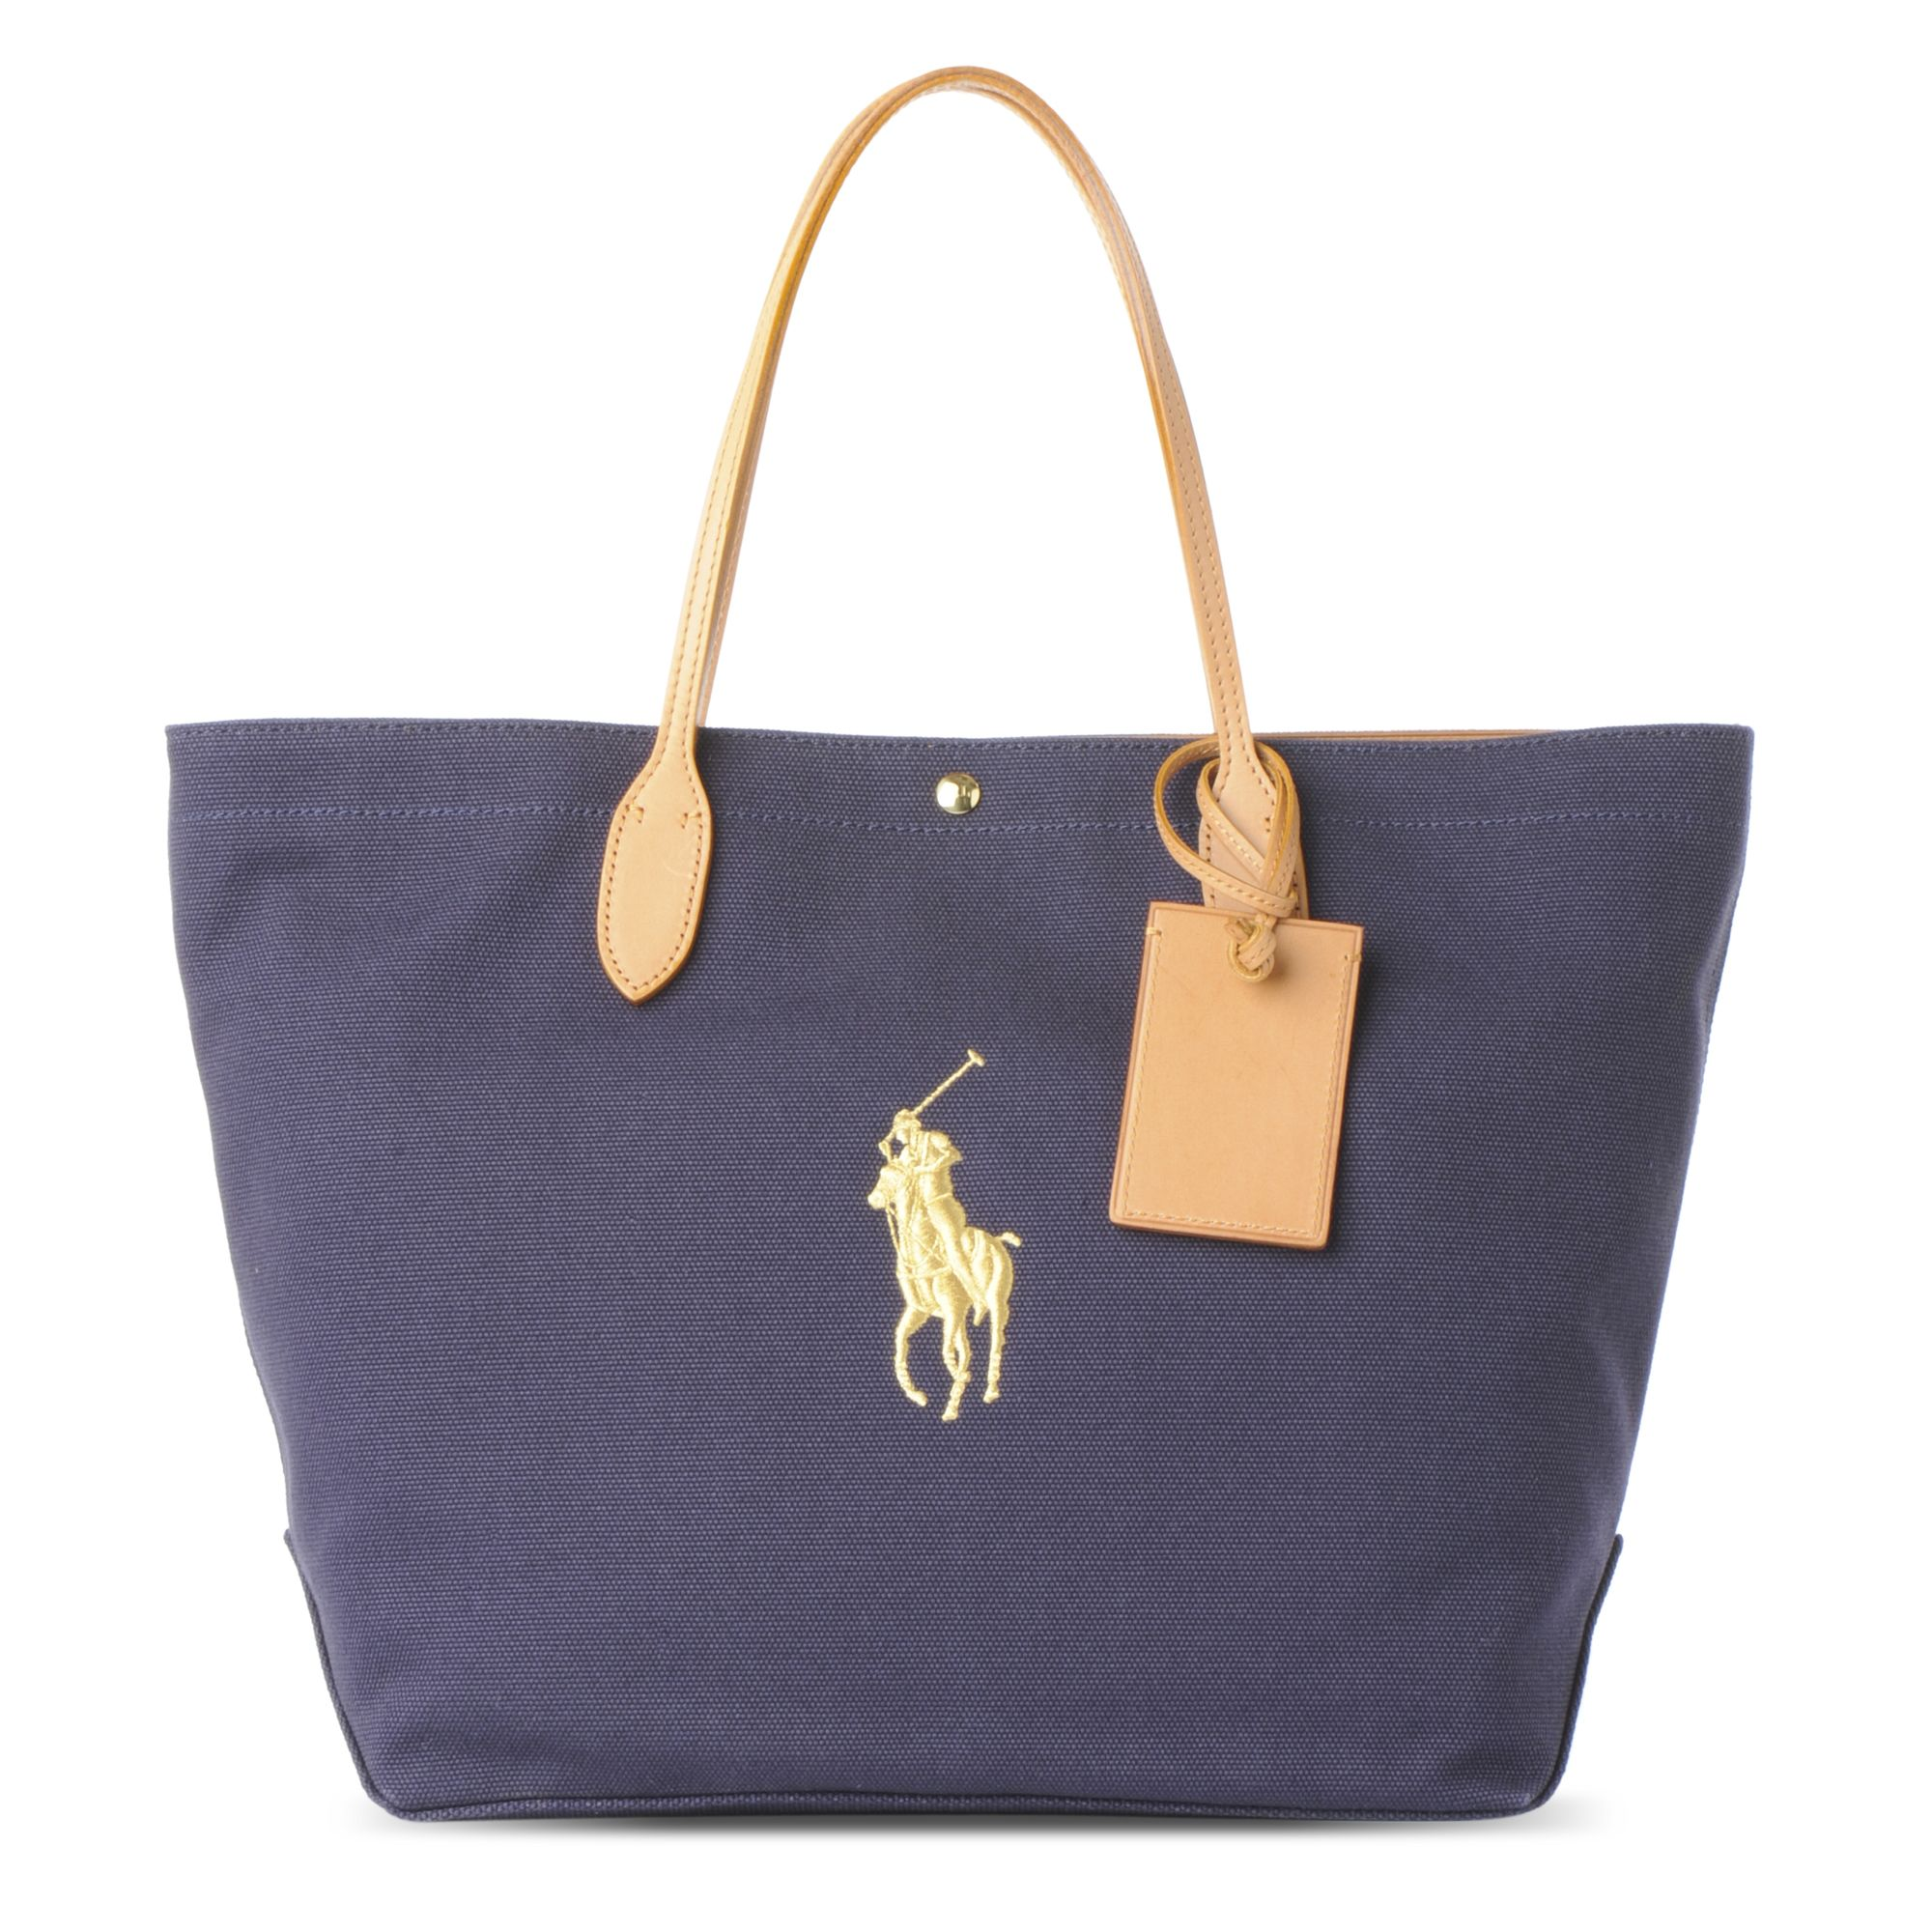 b15092d40235 Ralph Lauren Canvas Tote in Blue - Lyst